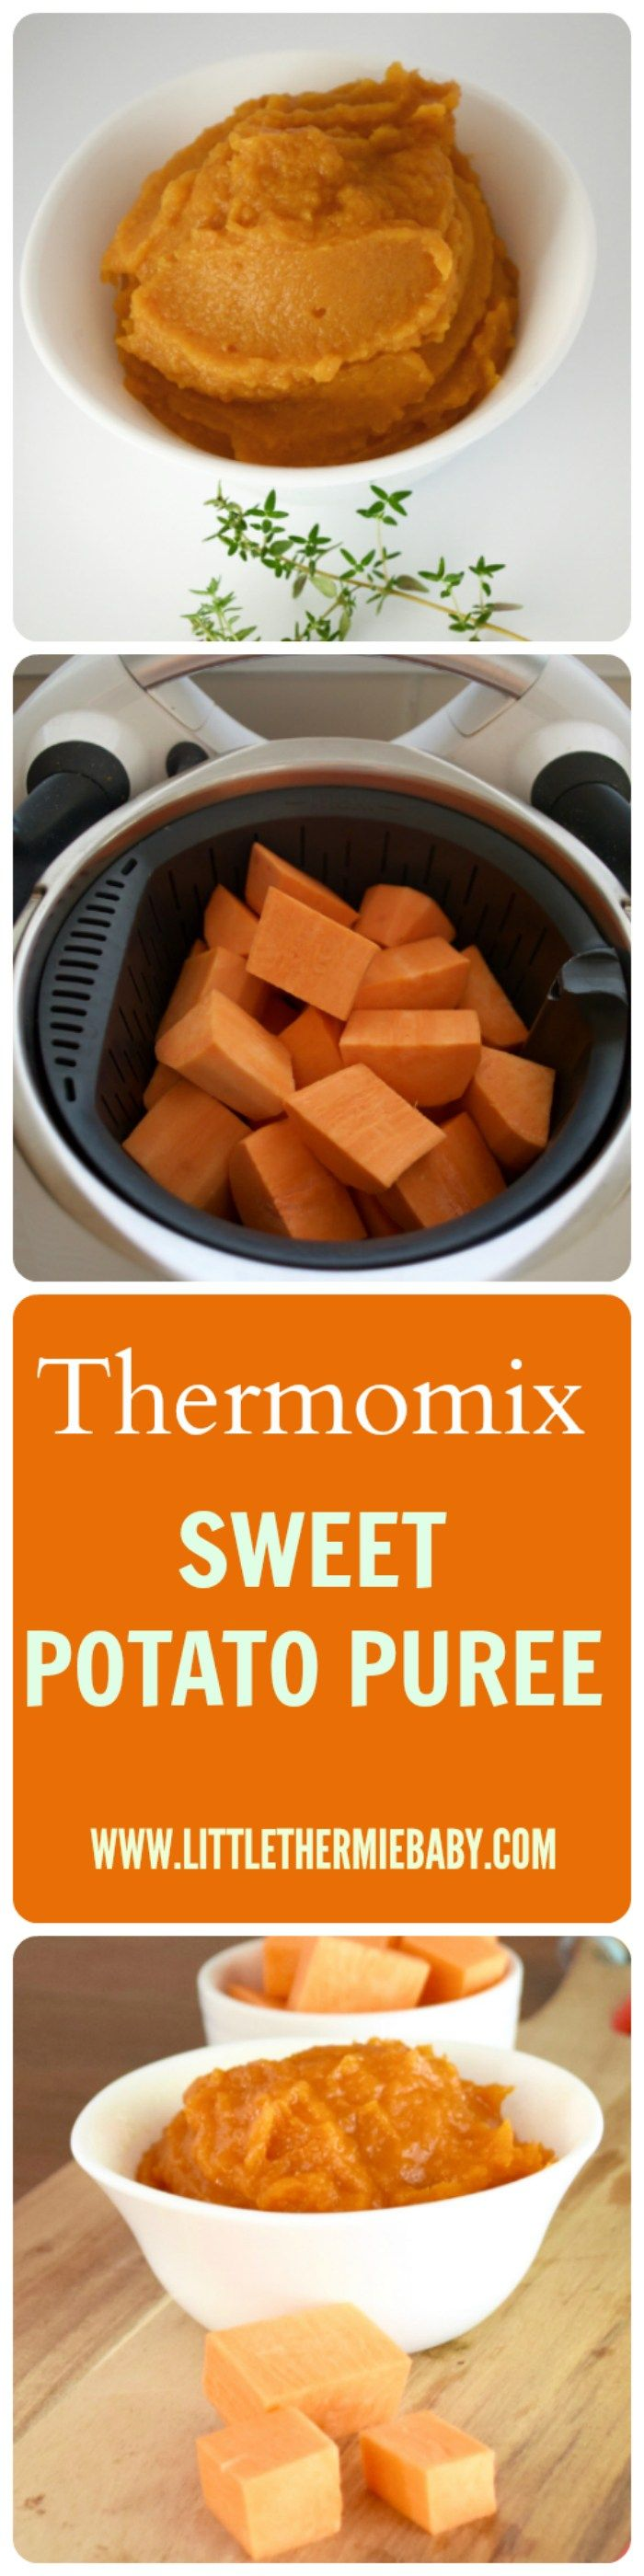 Thermomix Sweet Potato Baby Puree - I just love this Thermomix Sweet Potato puree for baby….it's delightful! Velvety and honey flavored, sweet potatoes are a fantastic super food to give babies. Babies just love them. And it's soooo easy to make! It's a really great place to start your baby weaning journey.